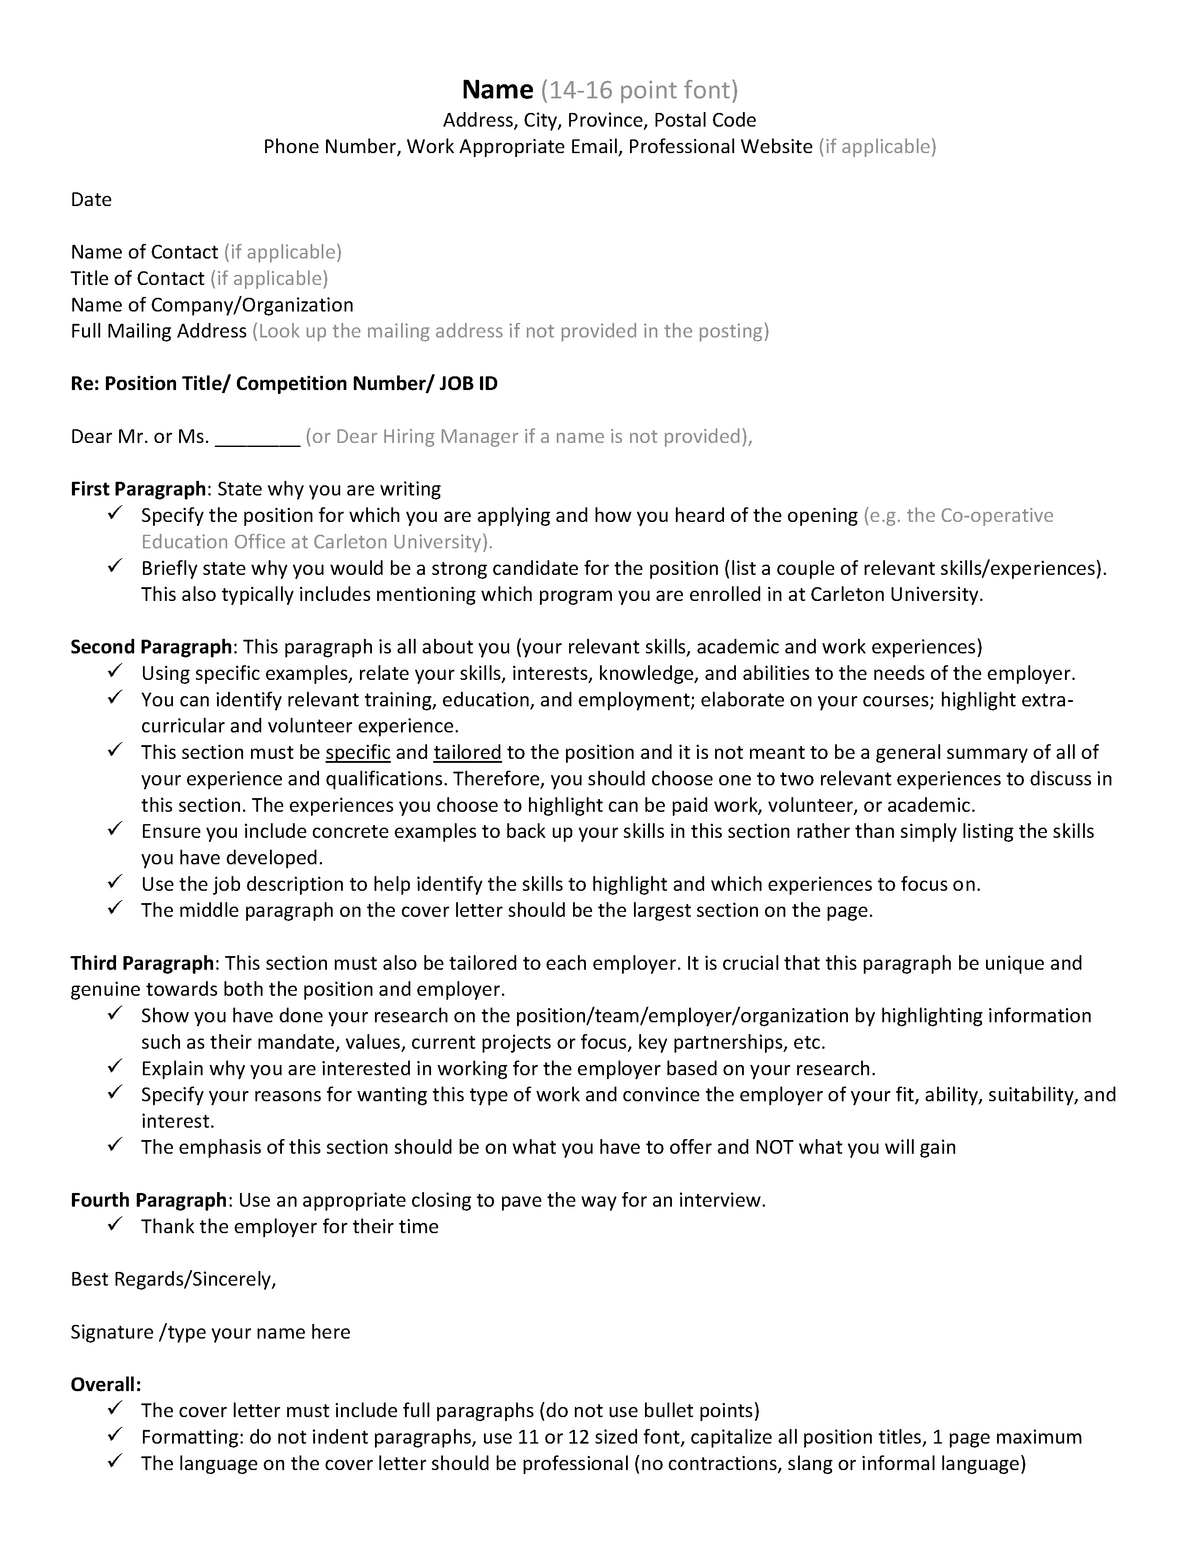 Cover Letter In Bullet Point Format from d20ohkaloyme4g.cloudfront.net